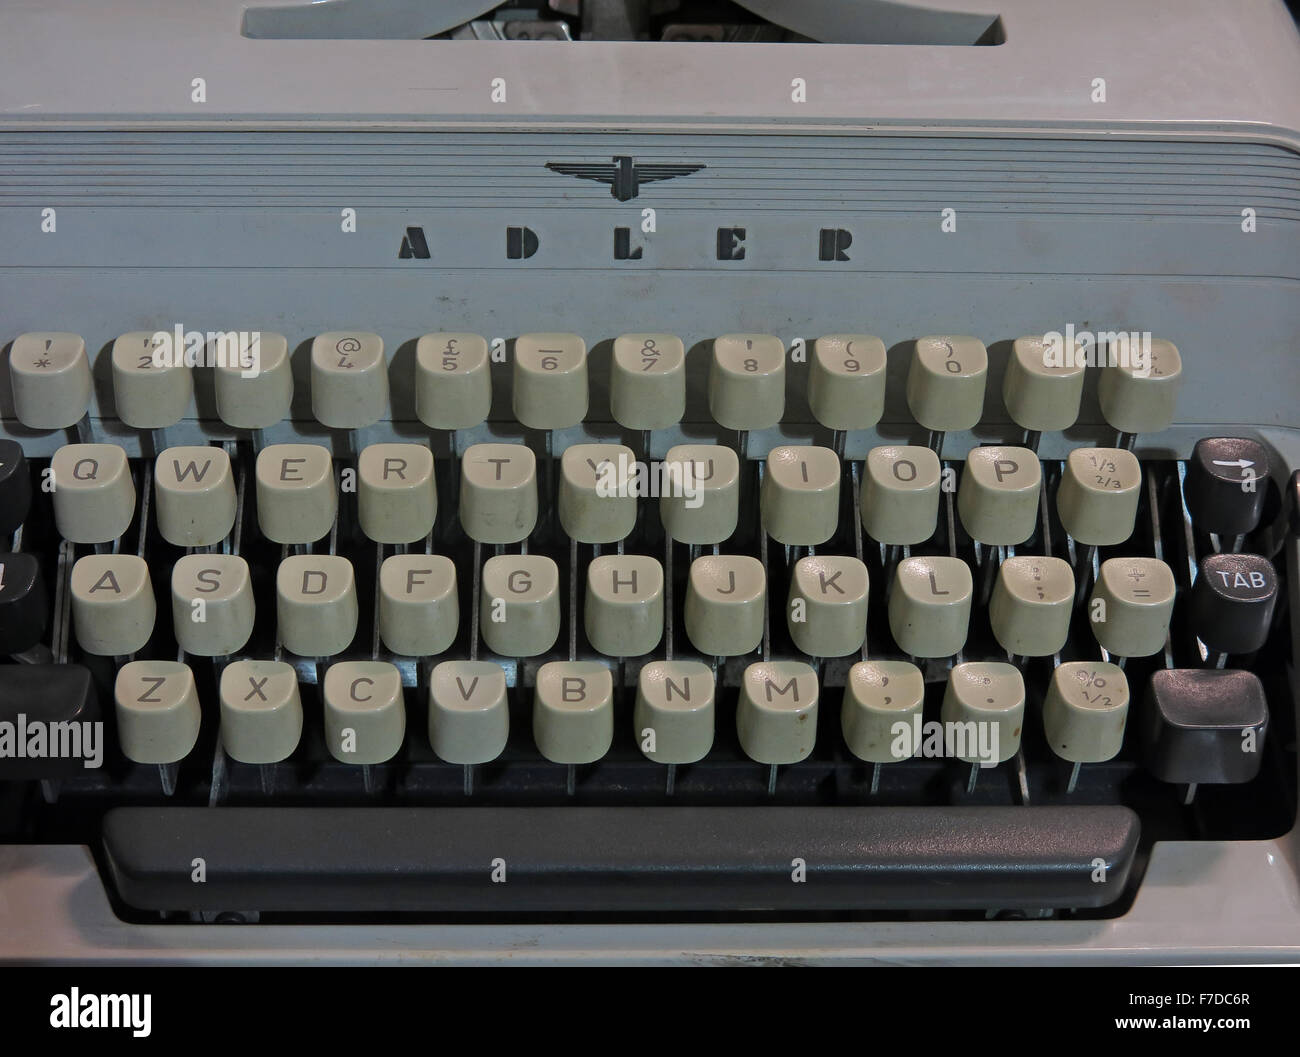 busines,letter,office,work,machine,technology,old,obsolete,tech,keys,keyboard,key,querty,retro,typed,azerty,vintage,brand,Gabriele,typewriter,author,tool,of,the,trade,Olivetti,company,TA,Royal,old technology,Obsolete Technology,Tool,of,the,trade,GoTonySmith,Buy Pictures of,Buy Images Of